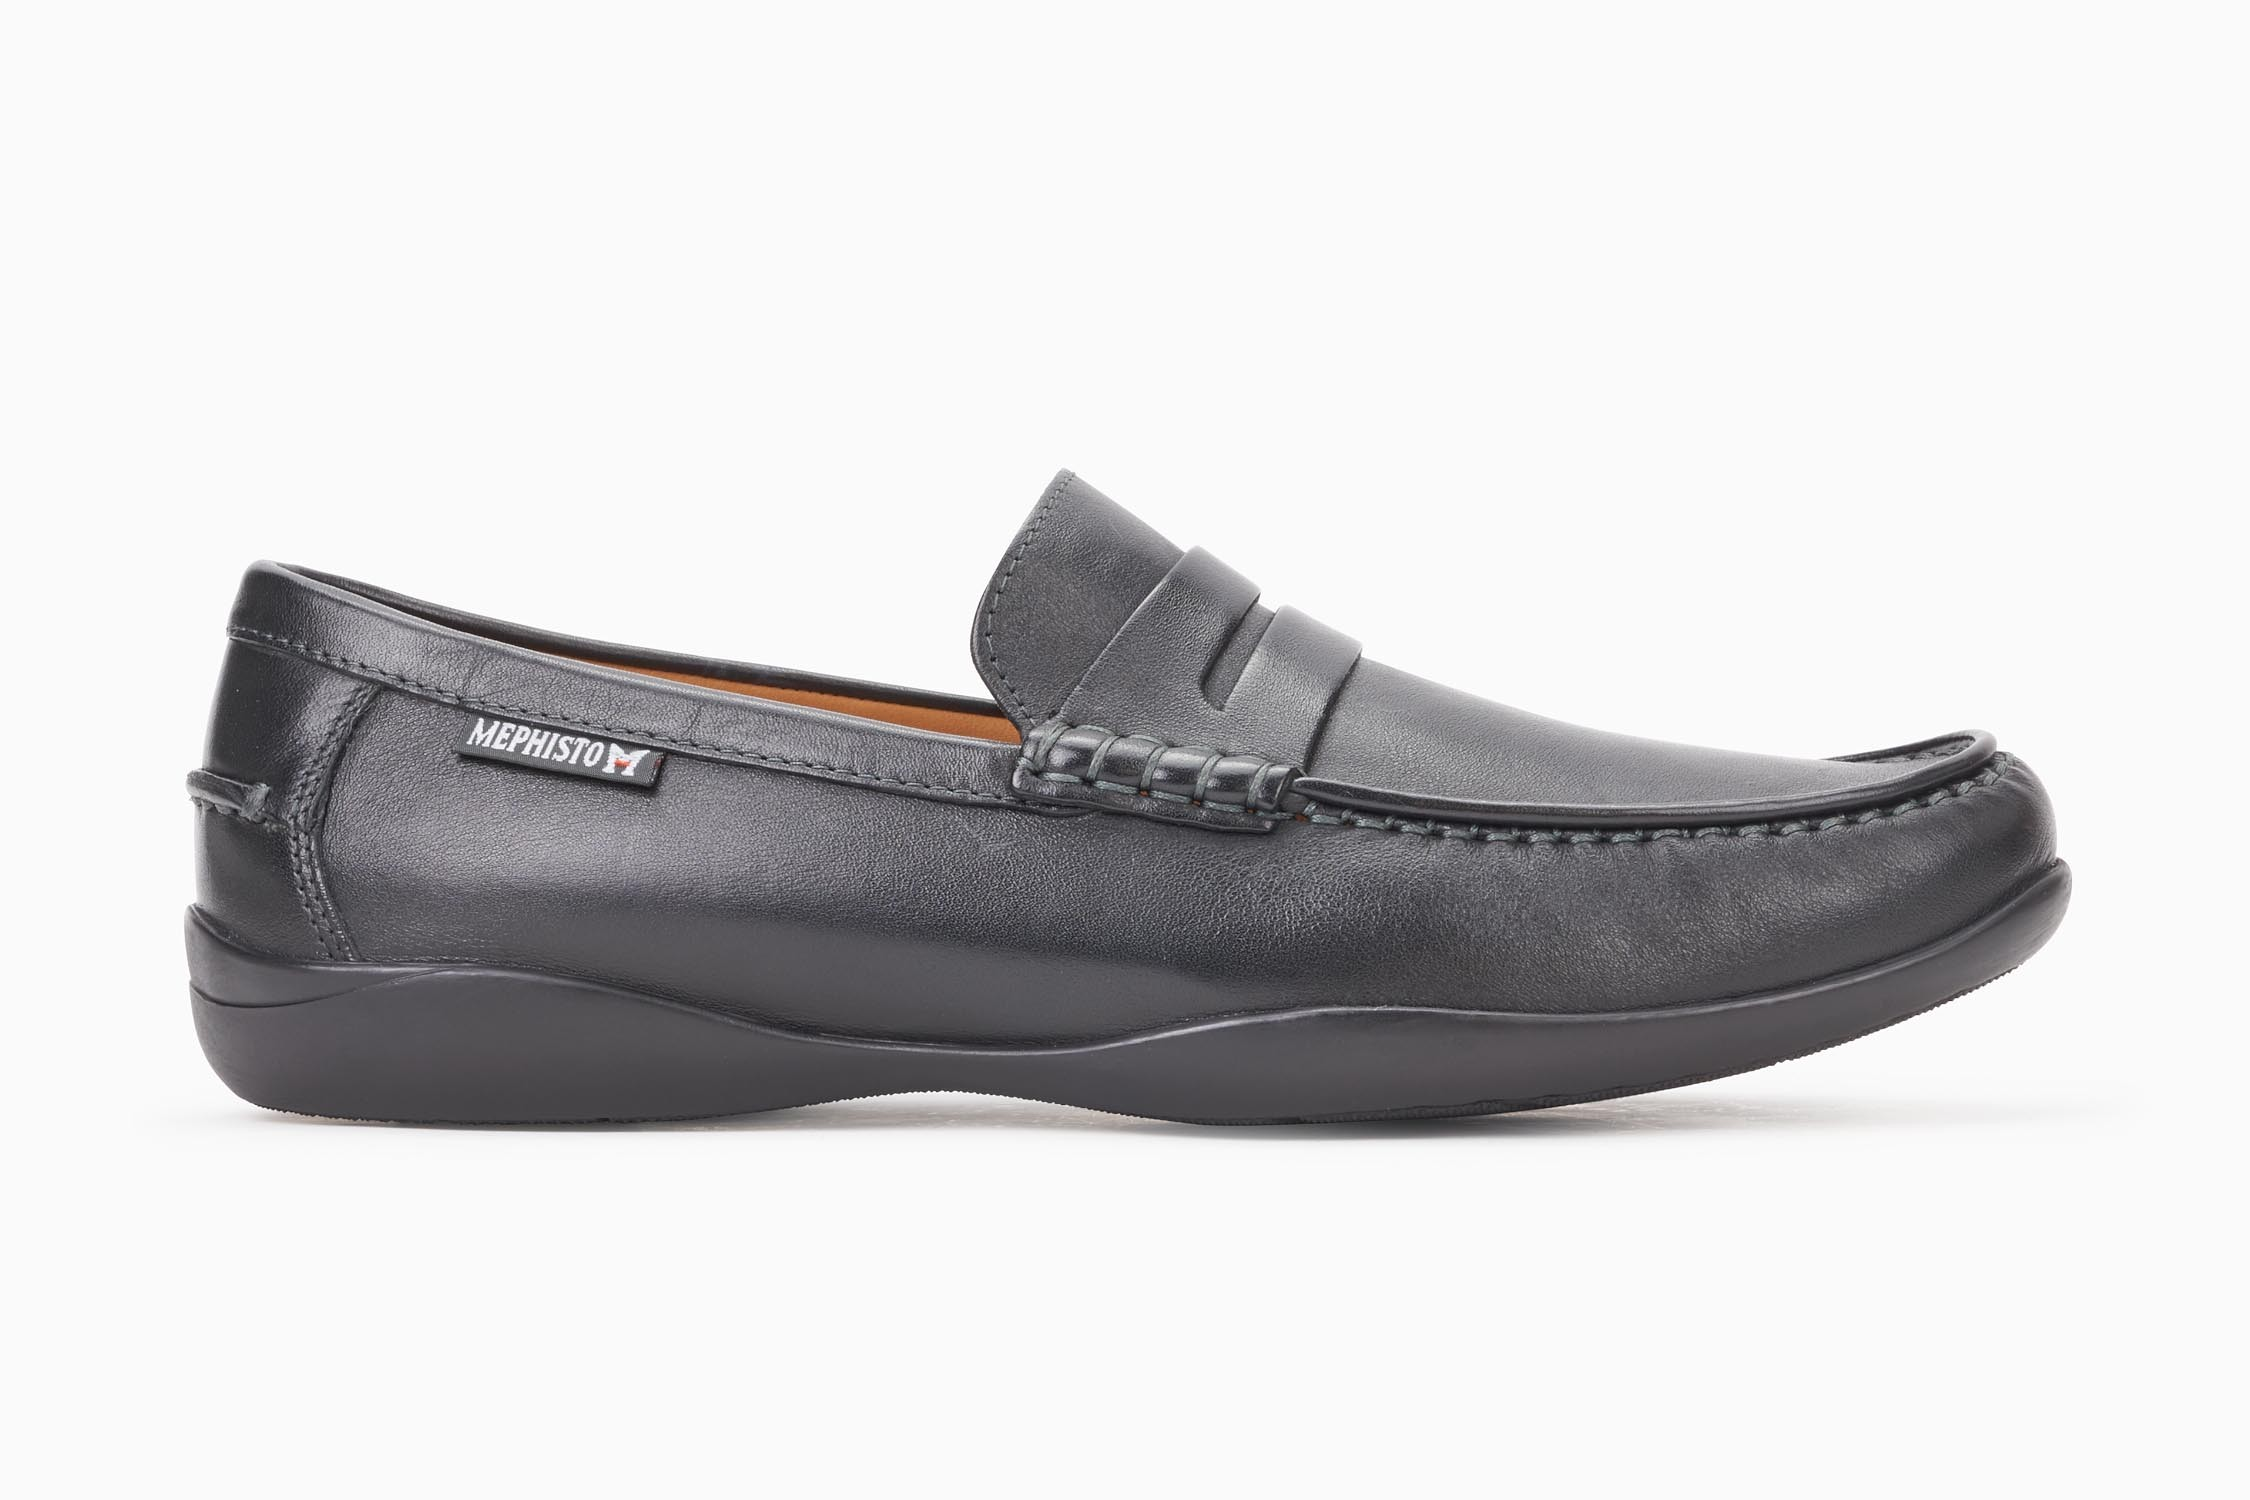 7715d356969 IGOR Slip-on - MEPHISTO Men's Loafers and Slip-ons | Smooth leather, black